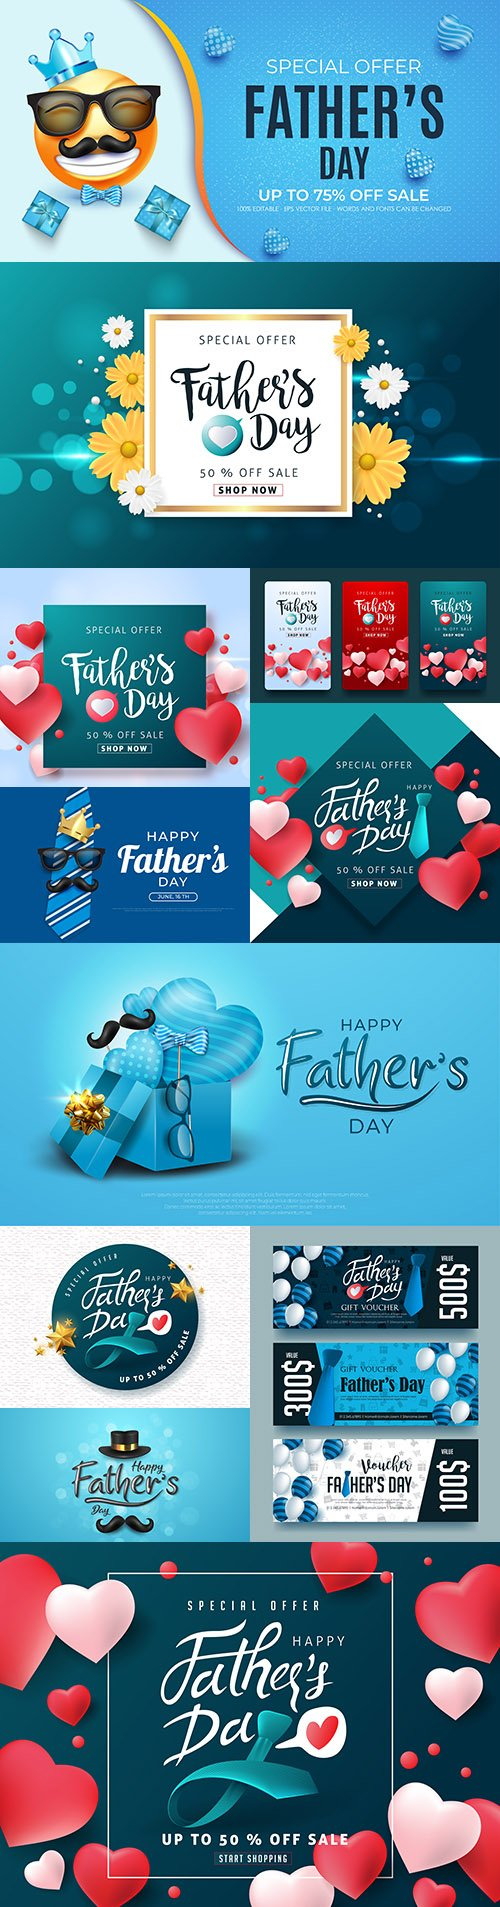 Happy Father 's Day design greeting card and banner 7